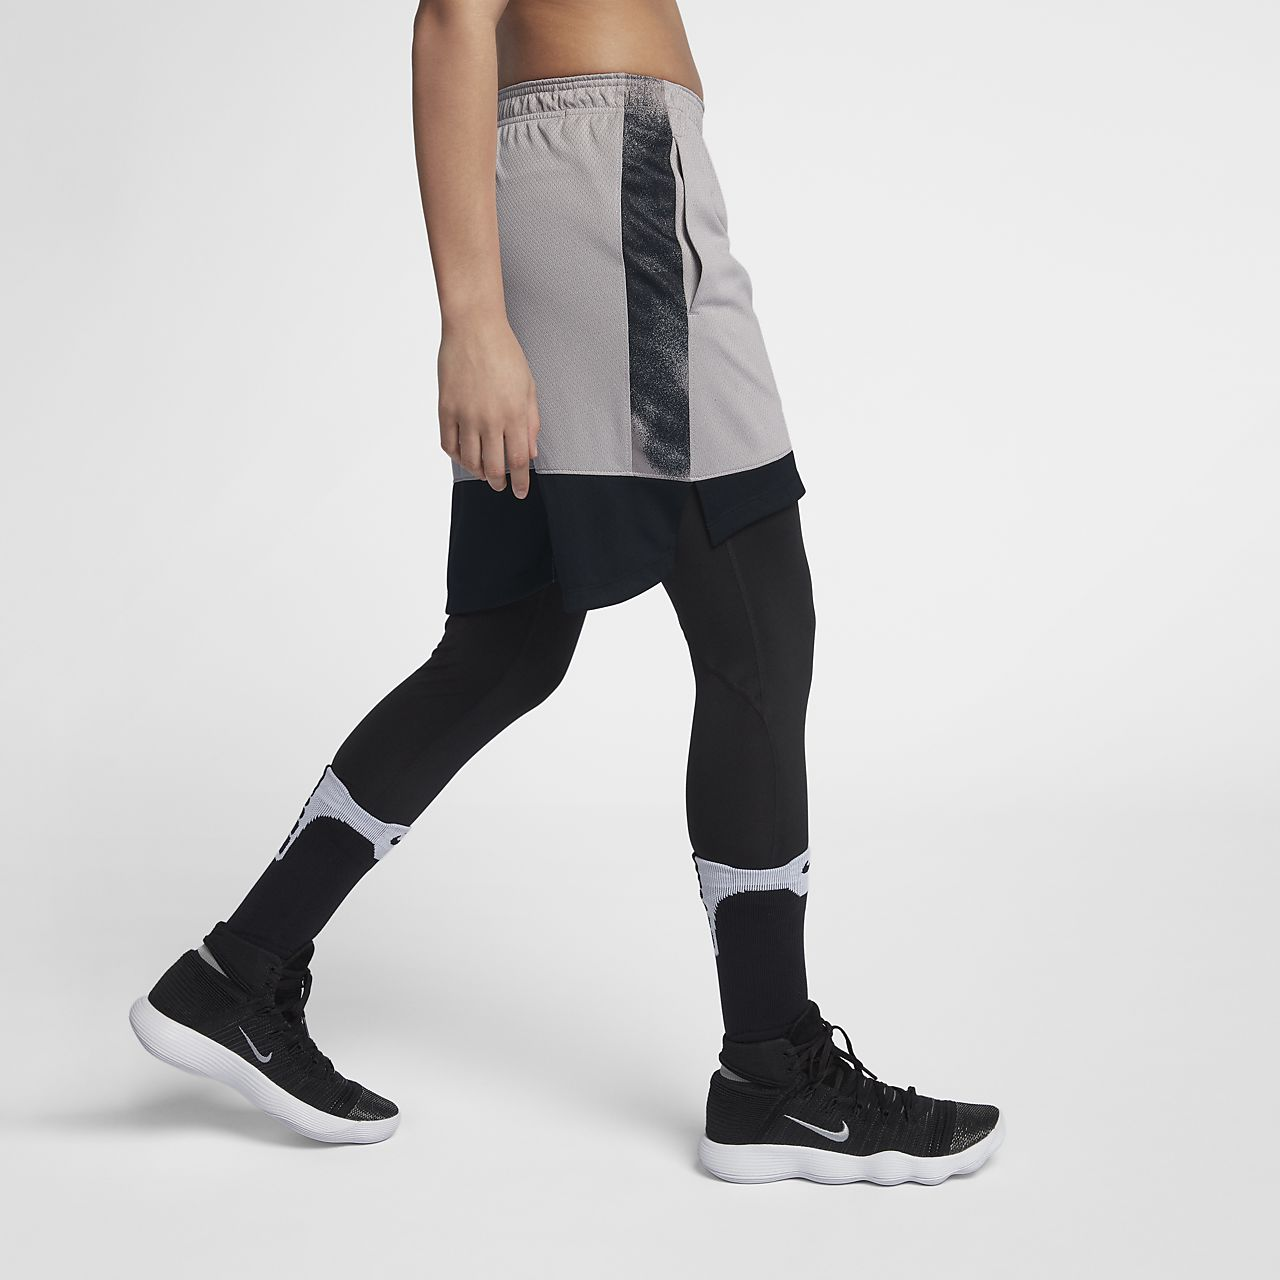 4e7997794bbe Basketball Nike Dri-FIT Elite Women s 7